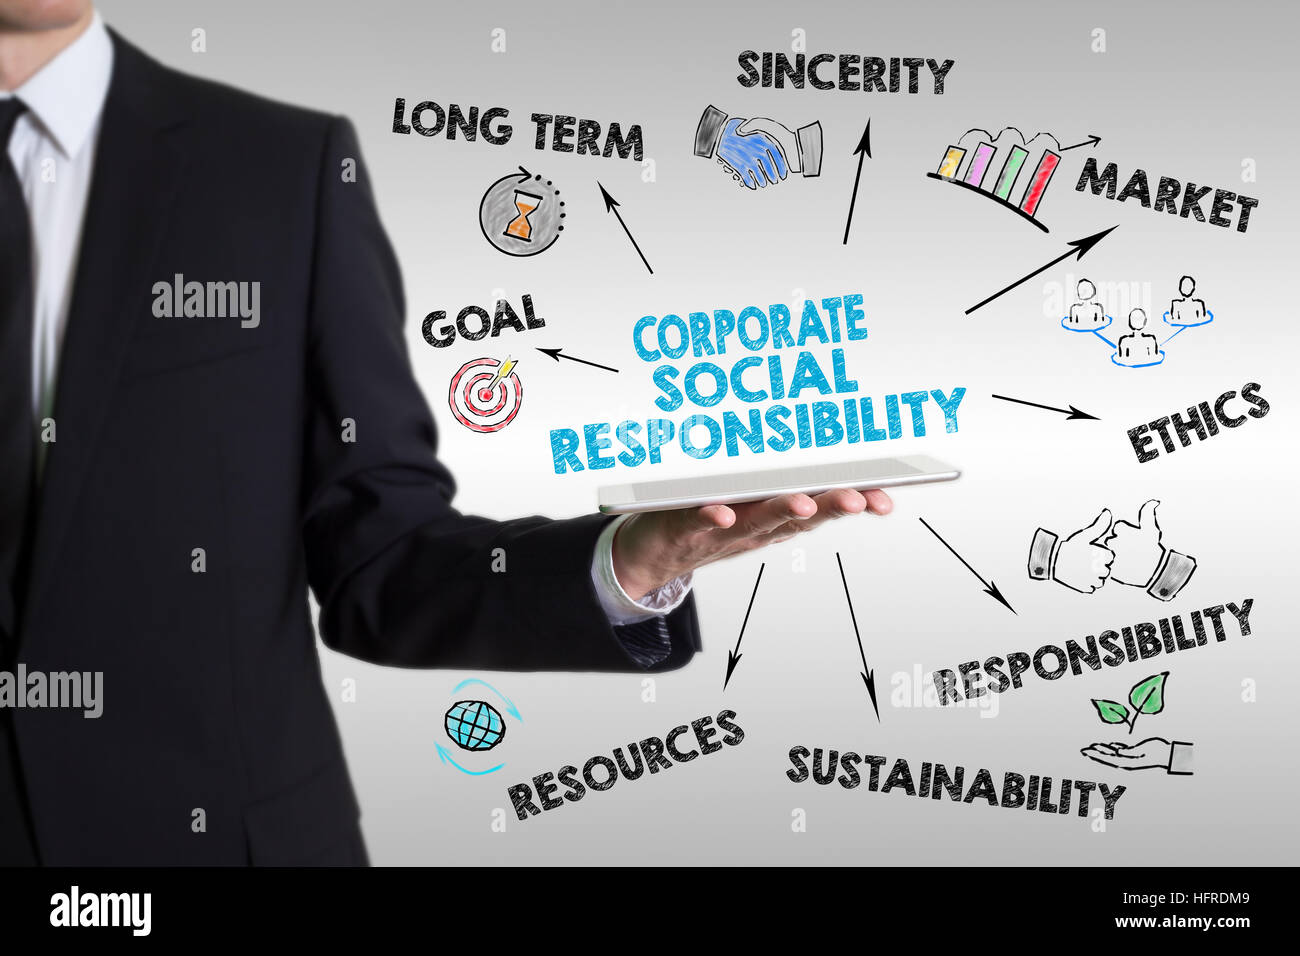 Corporate Social Responsibility Concept. Man holding a tablet computer. - Stock Image